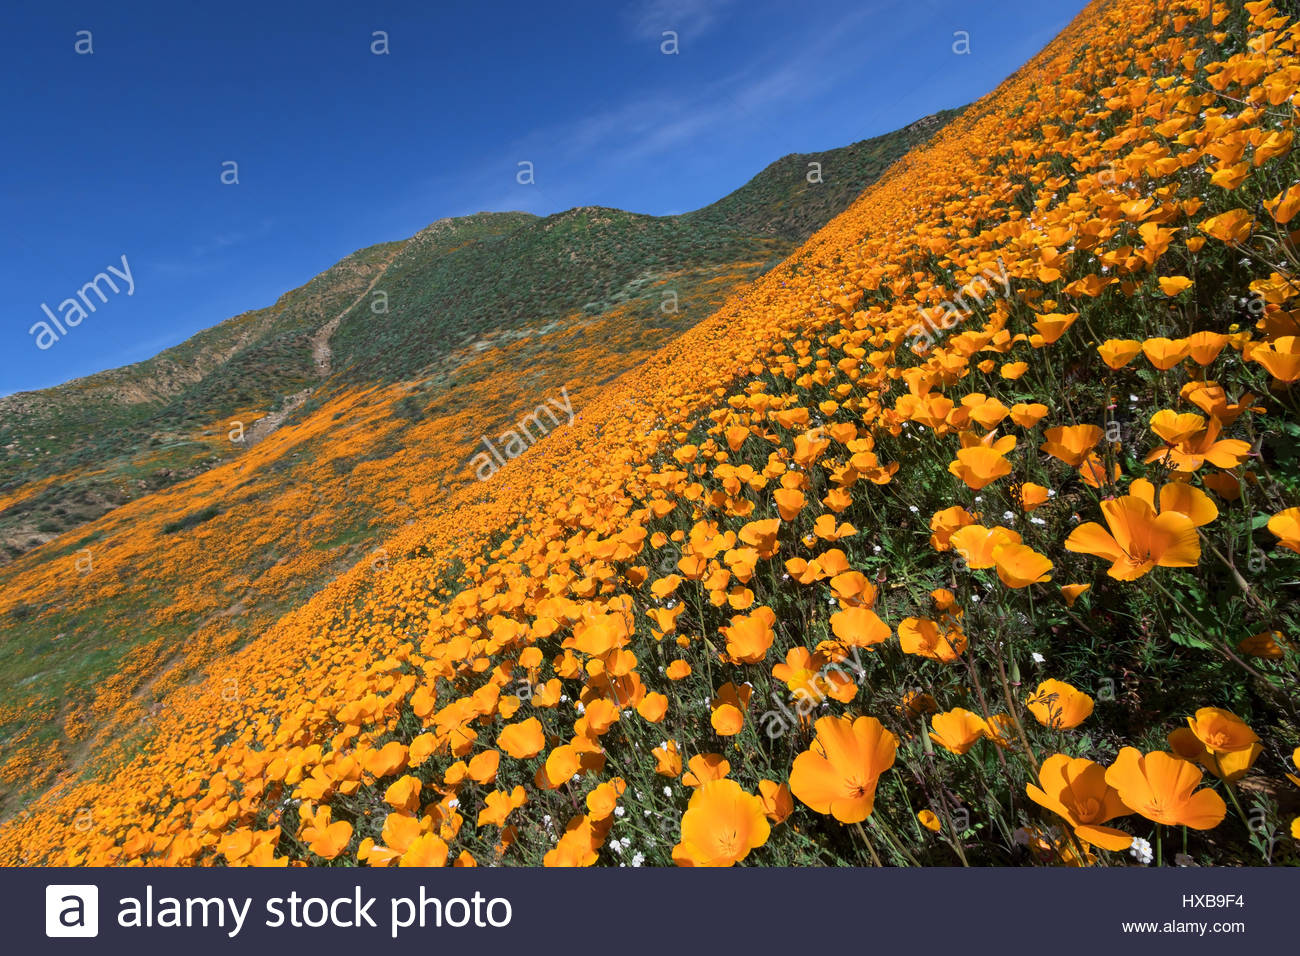 California Golden Poppy blooming in Walker Canyon, Lake Elsinore, CA - Stock Image